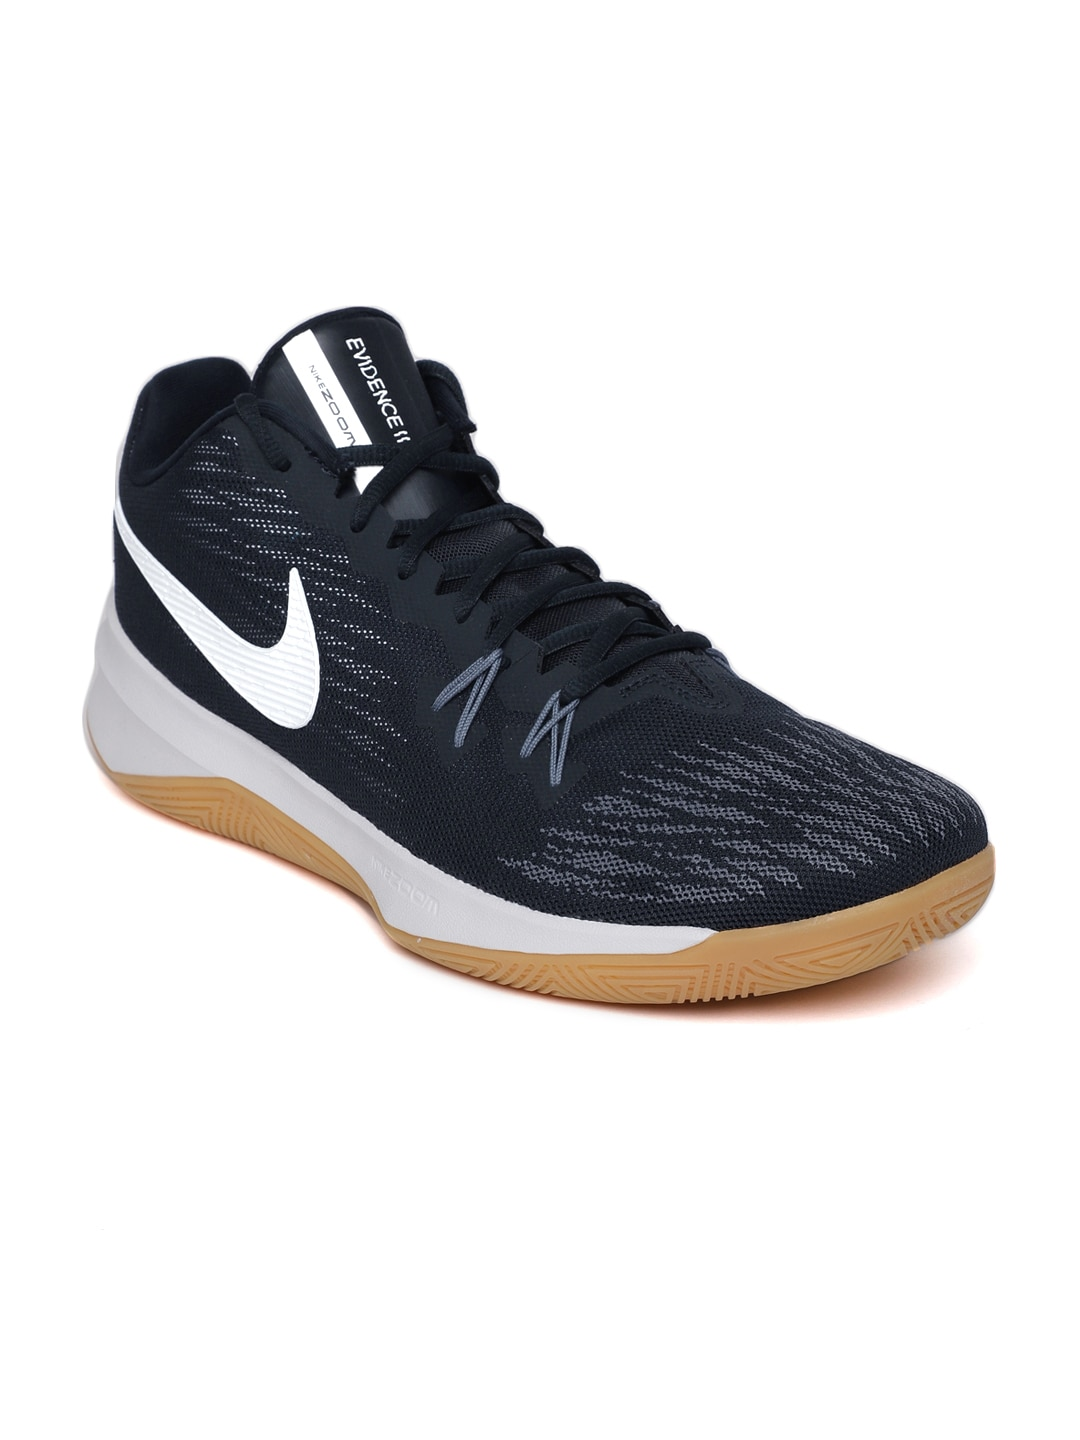 b320e251c1d3 Nike Basketball Shoes